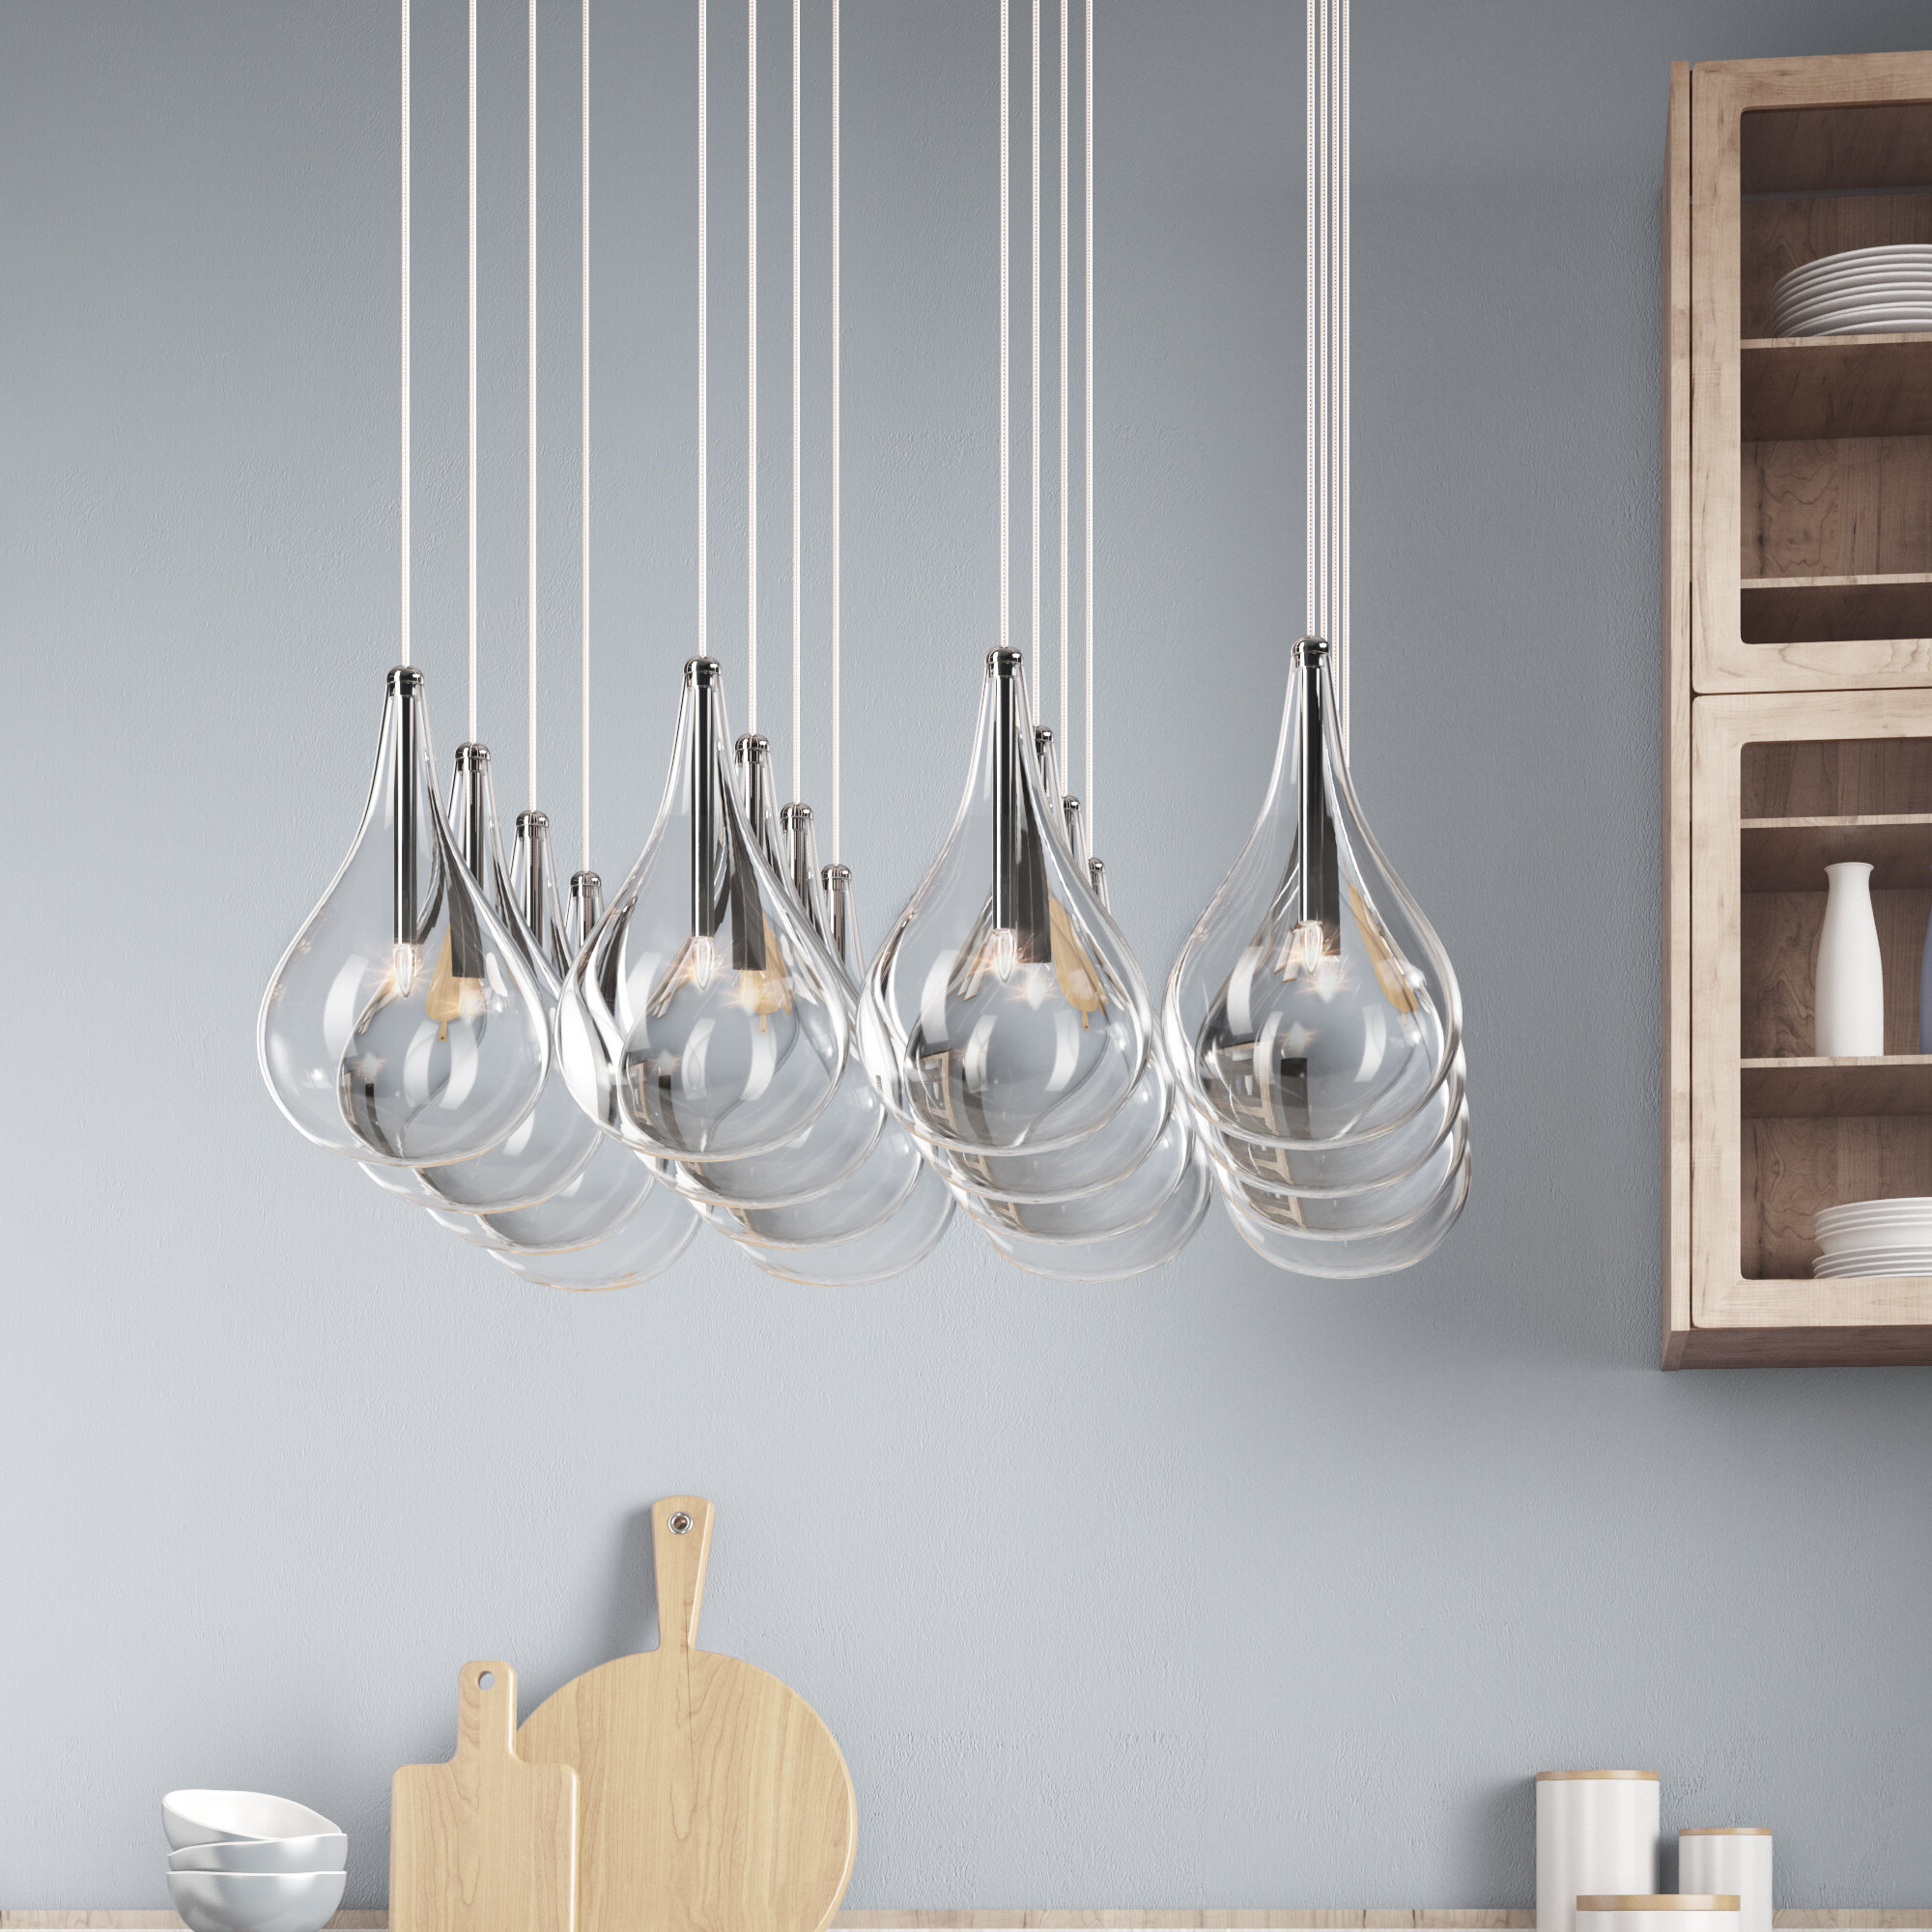 Most Current Wade Logan Neal 16 Light Kitchen Island Pendant & Reviews Pertaining To Neal 9 Light Kitchen Island Teardrop Pendants (Gallery 10 of 20)